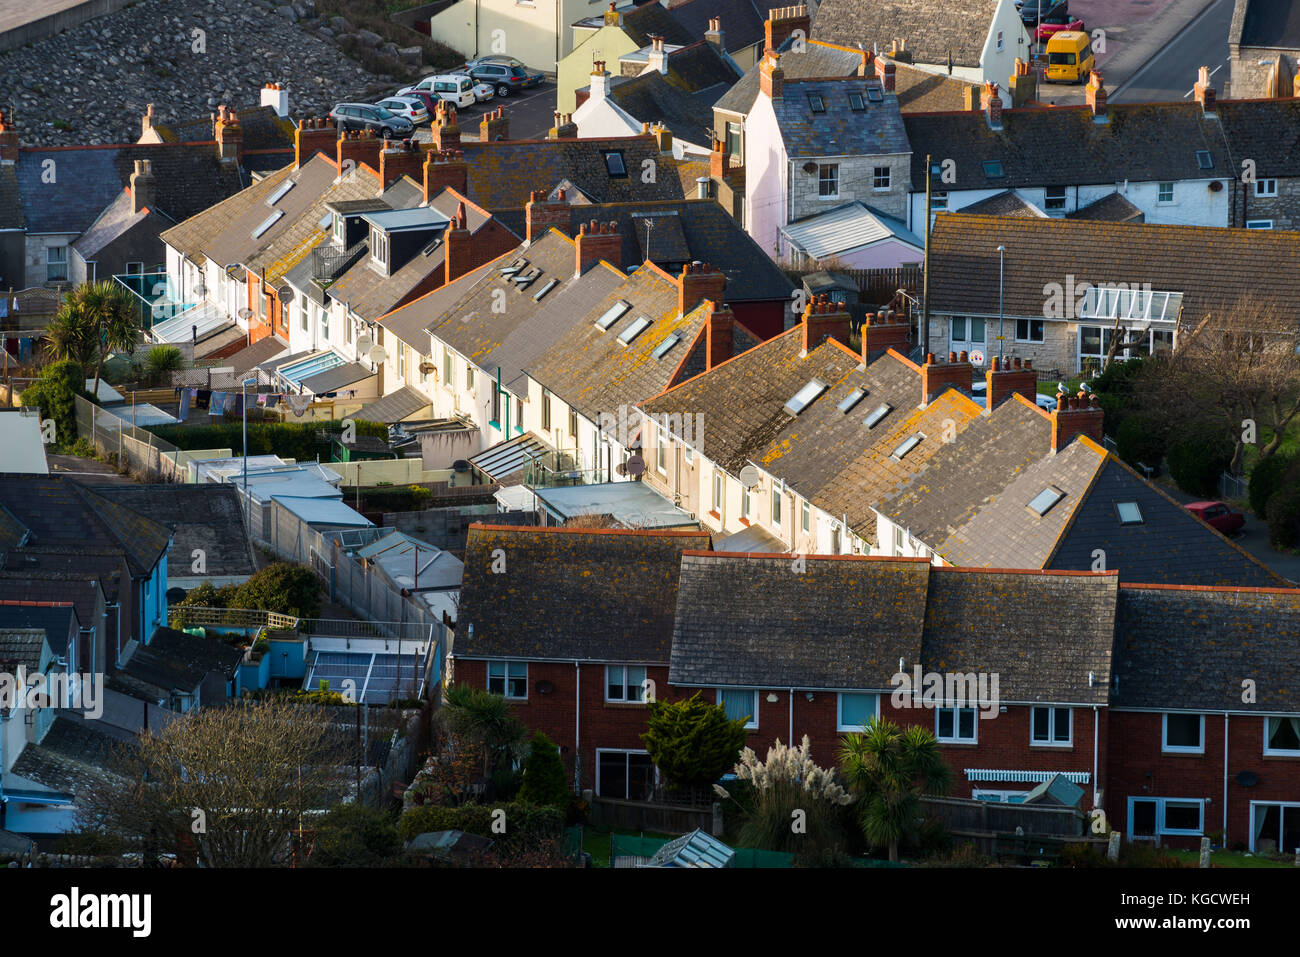 A view of houses and rooftops at Fortuneswell on the Isle of Portland in Dorset.  Picture Credit: Graham Hunt/Alamy - Stock Image